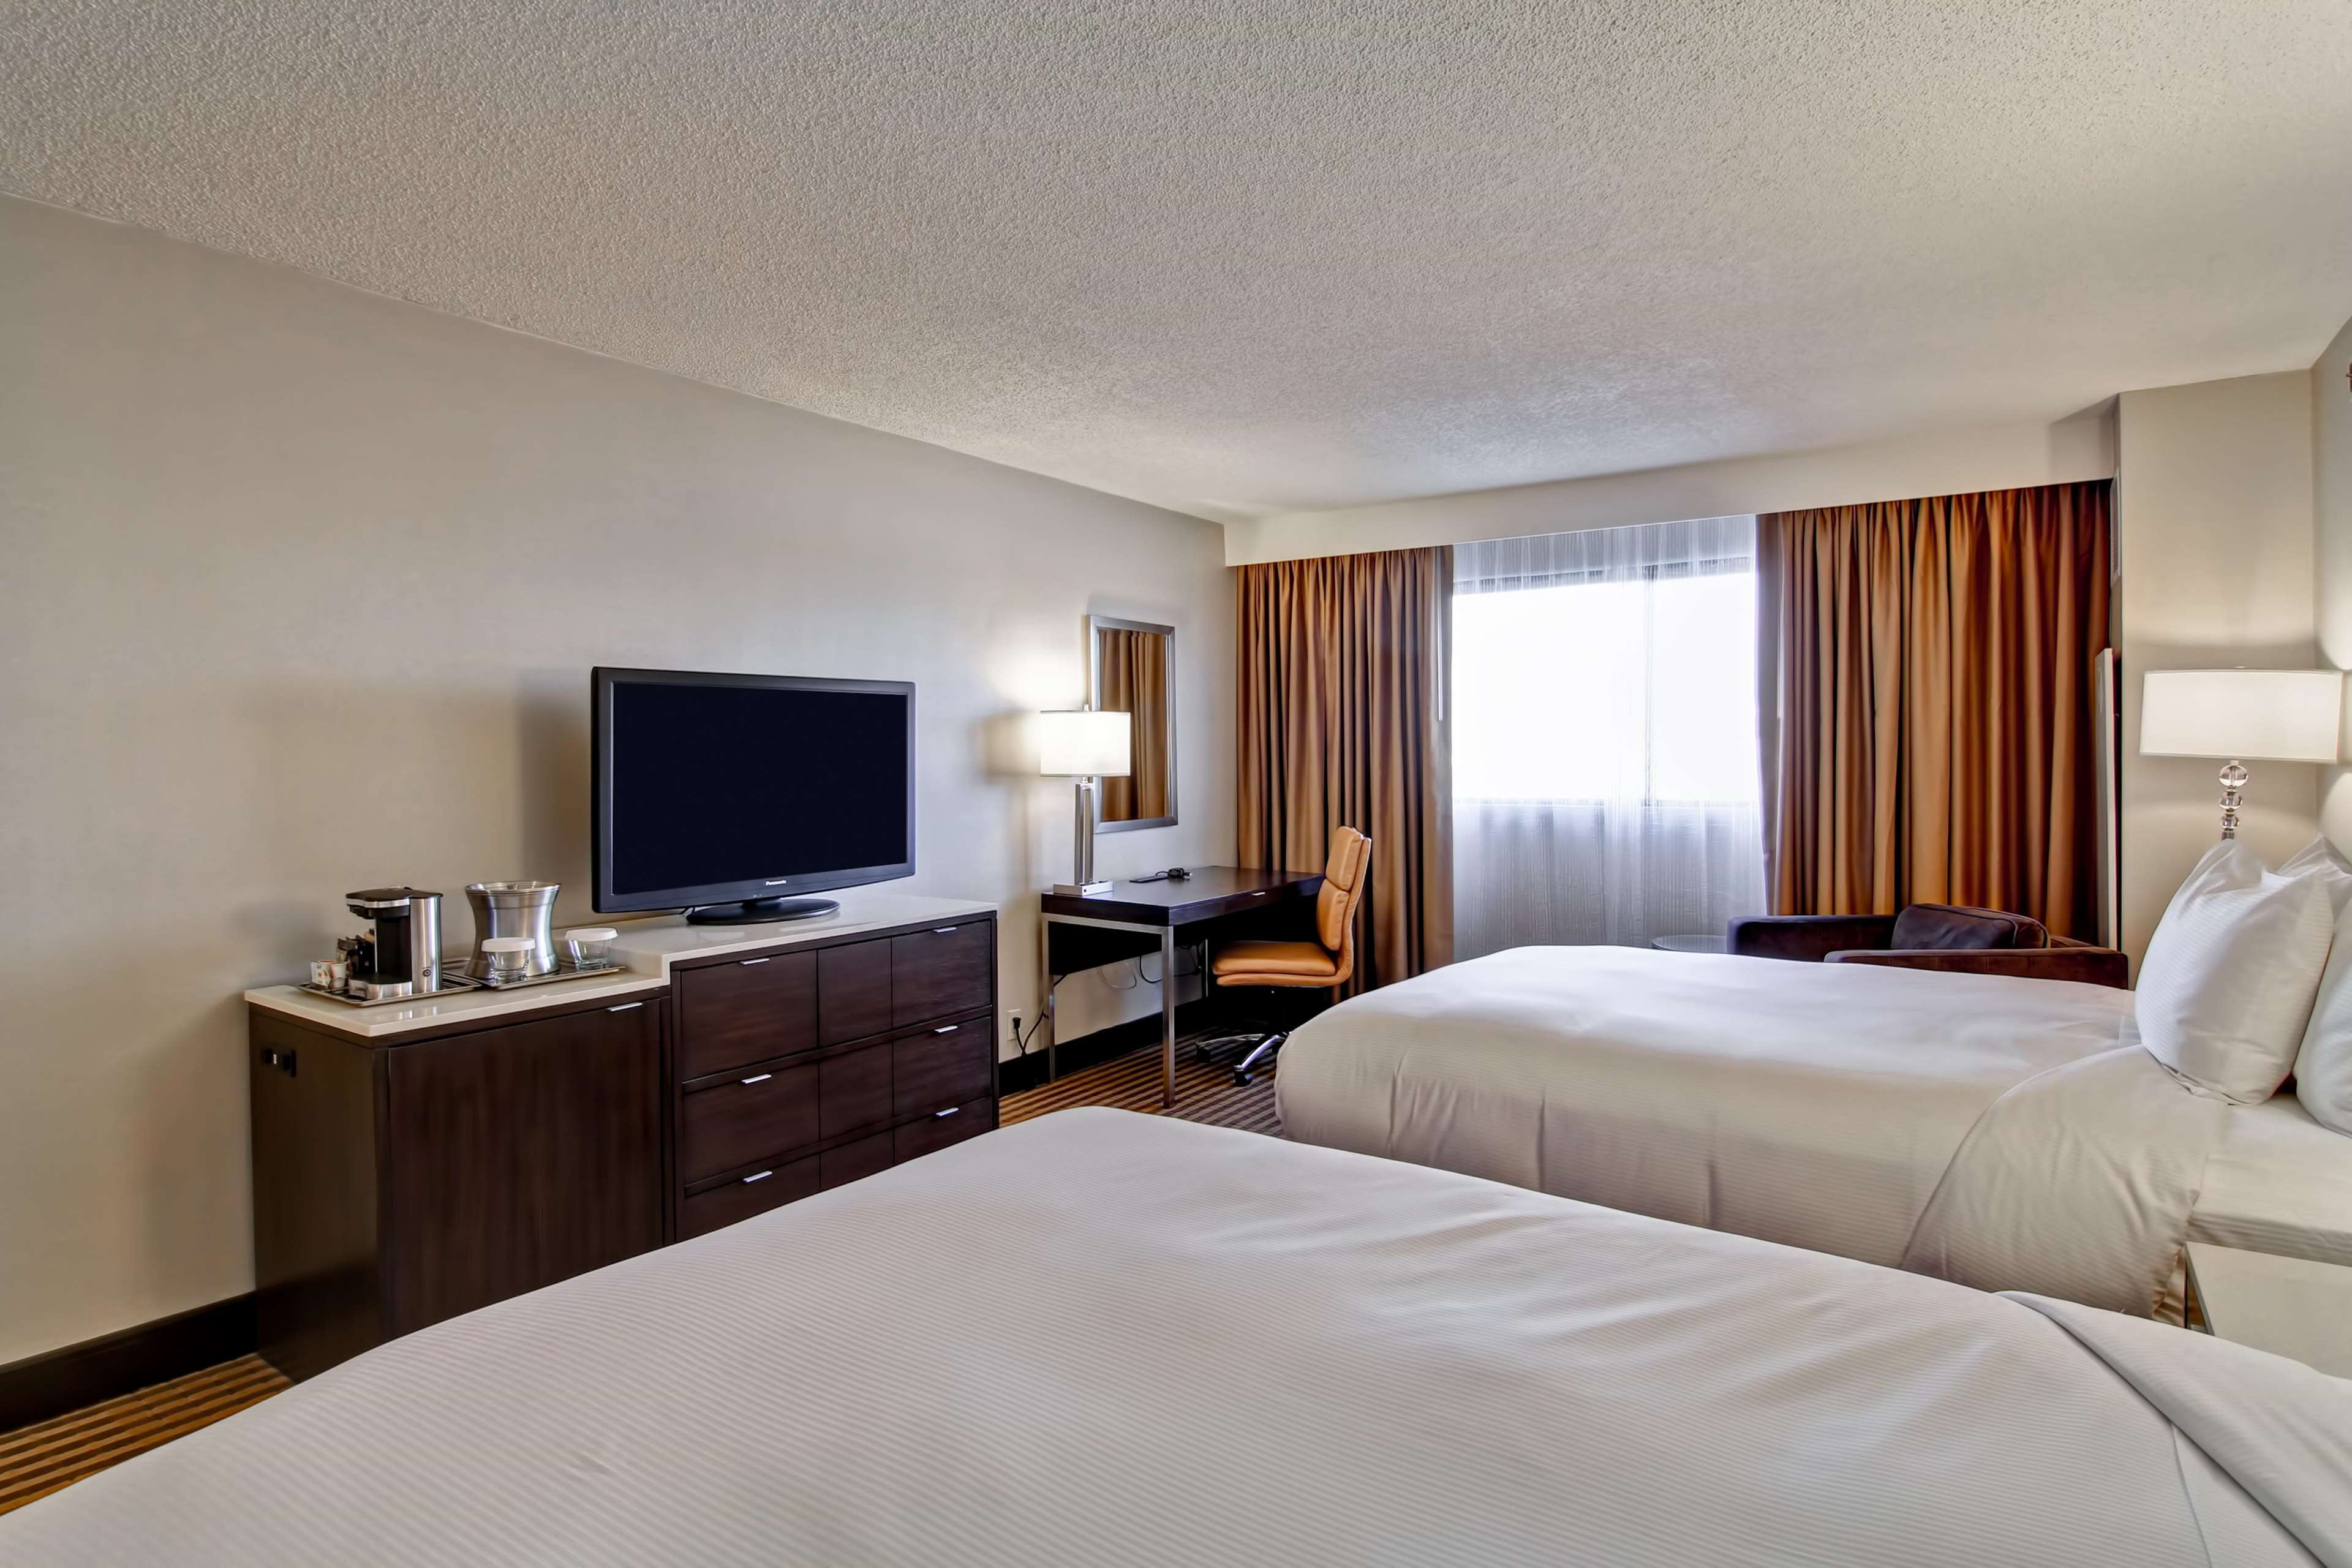 DoubleTree by Hilton Hotel Pleasanton at the Club image 35